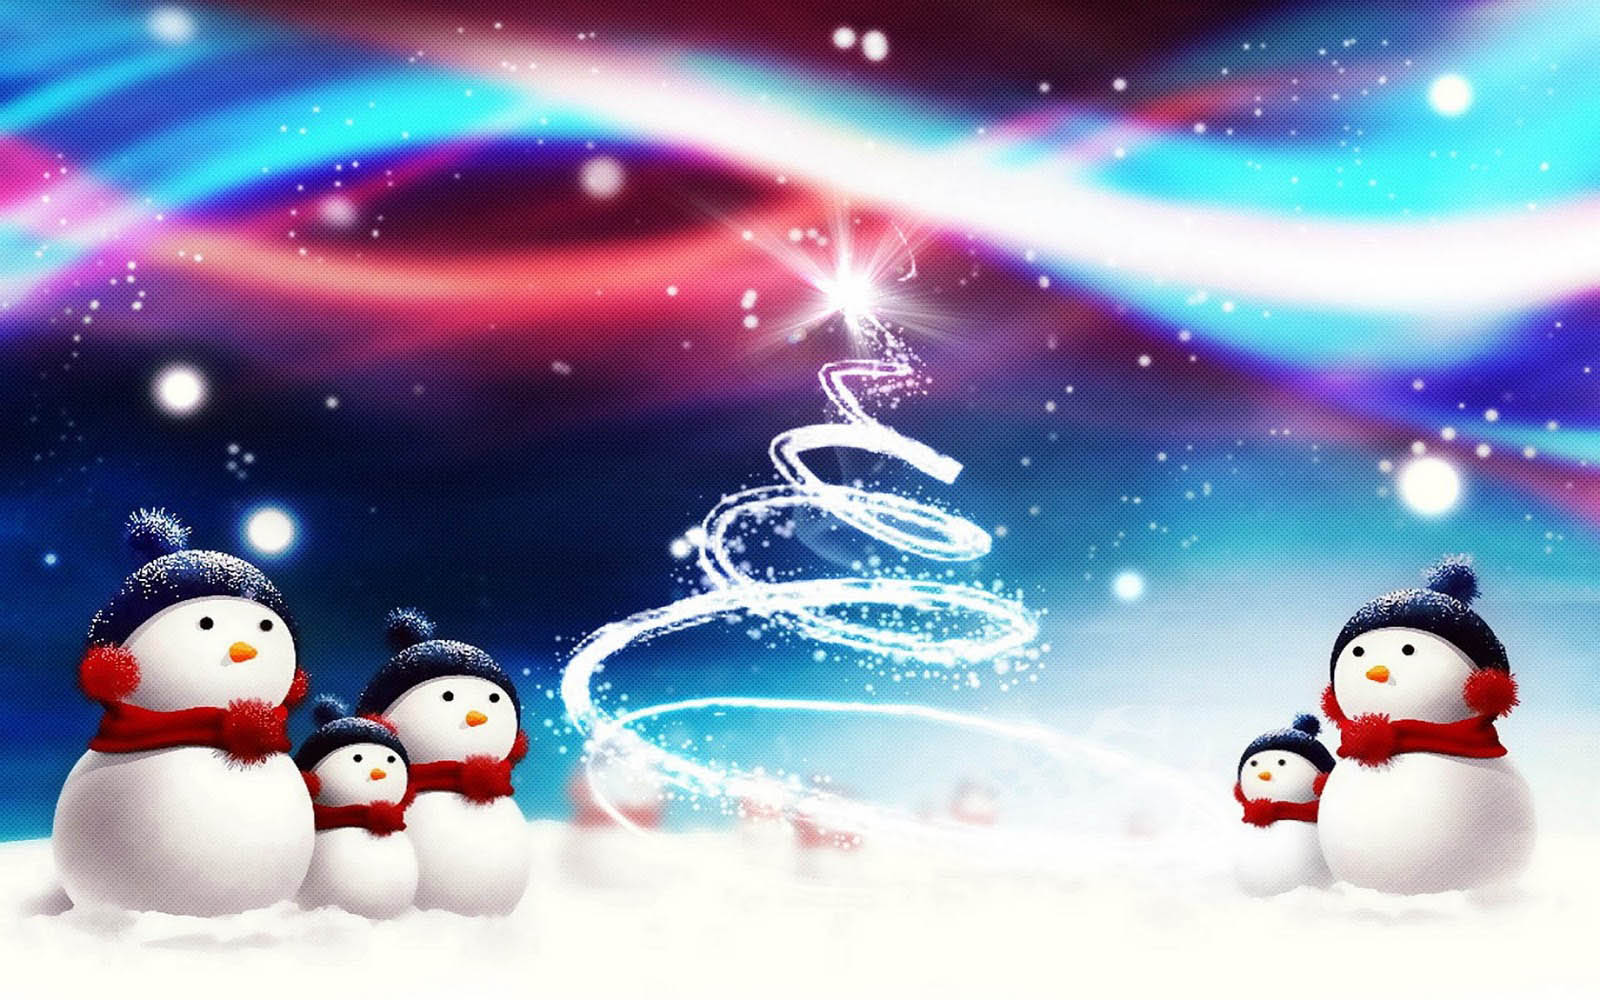 free snowman desktop wallpapers wallpaper cave. Black Bedroom Furniture Sets. Home Design Ideas